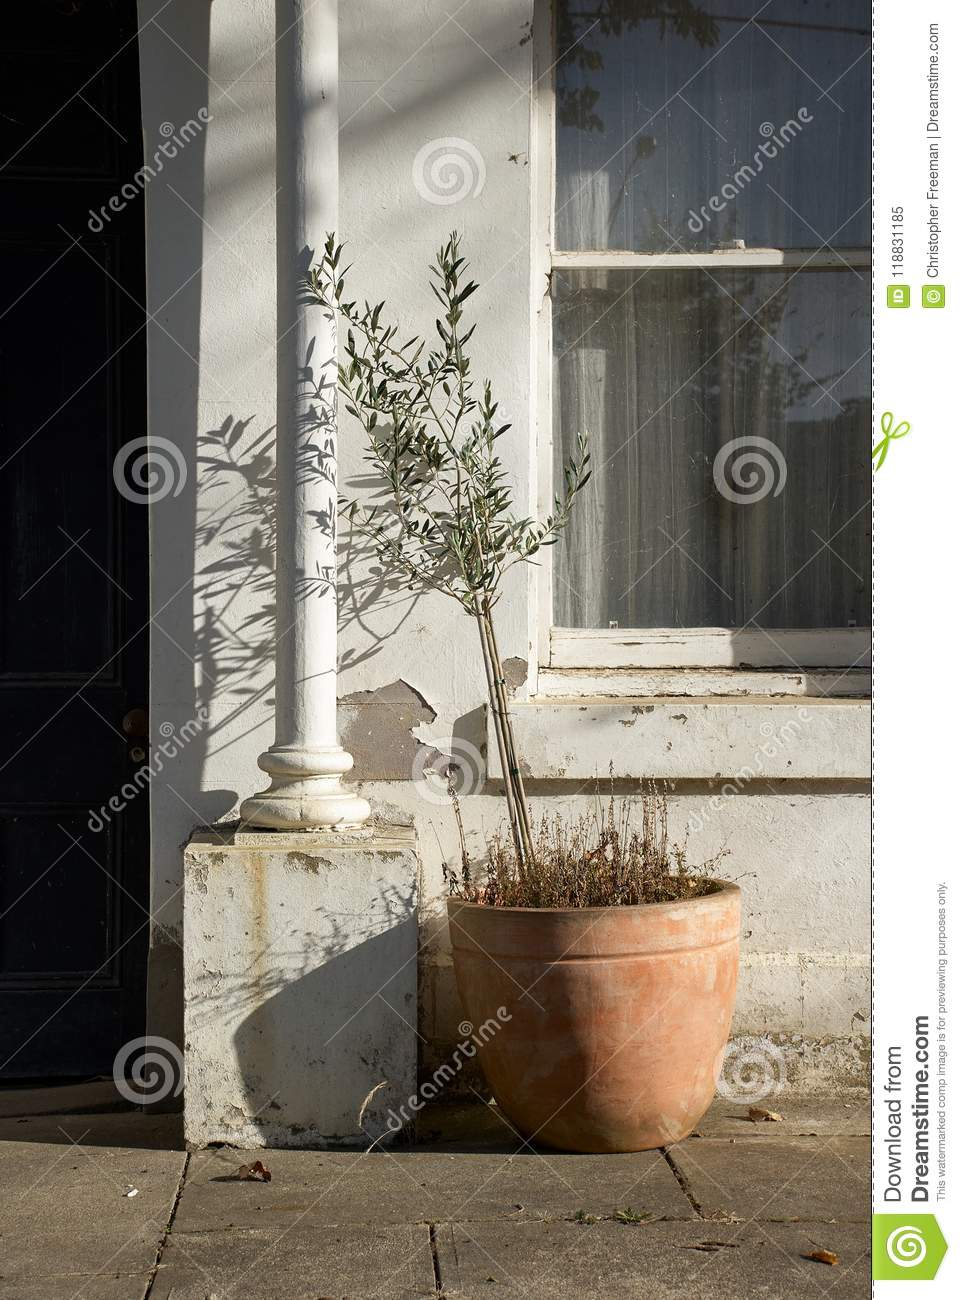 Olive tree in a terracotta pot outside the entrance to an old building